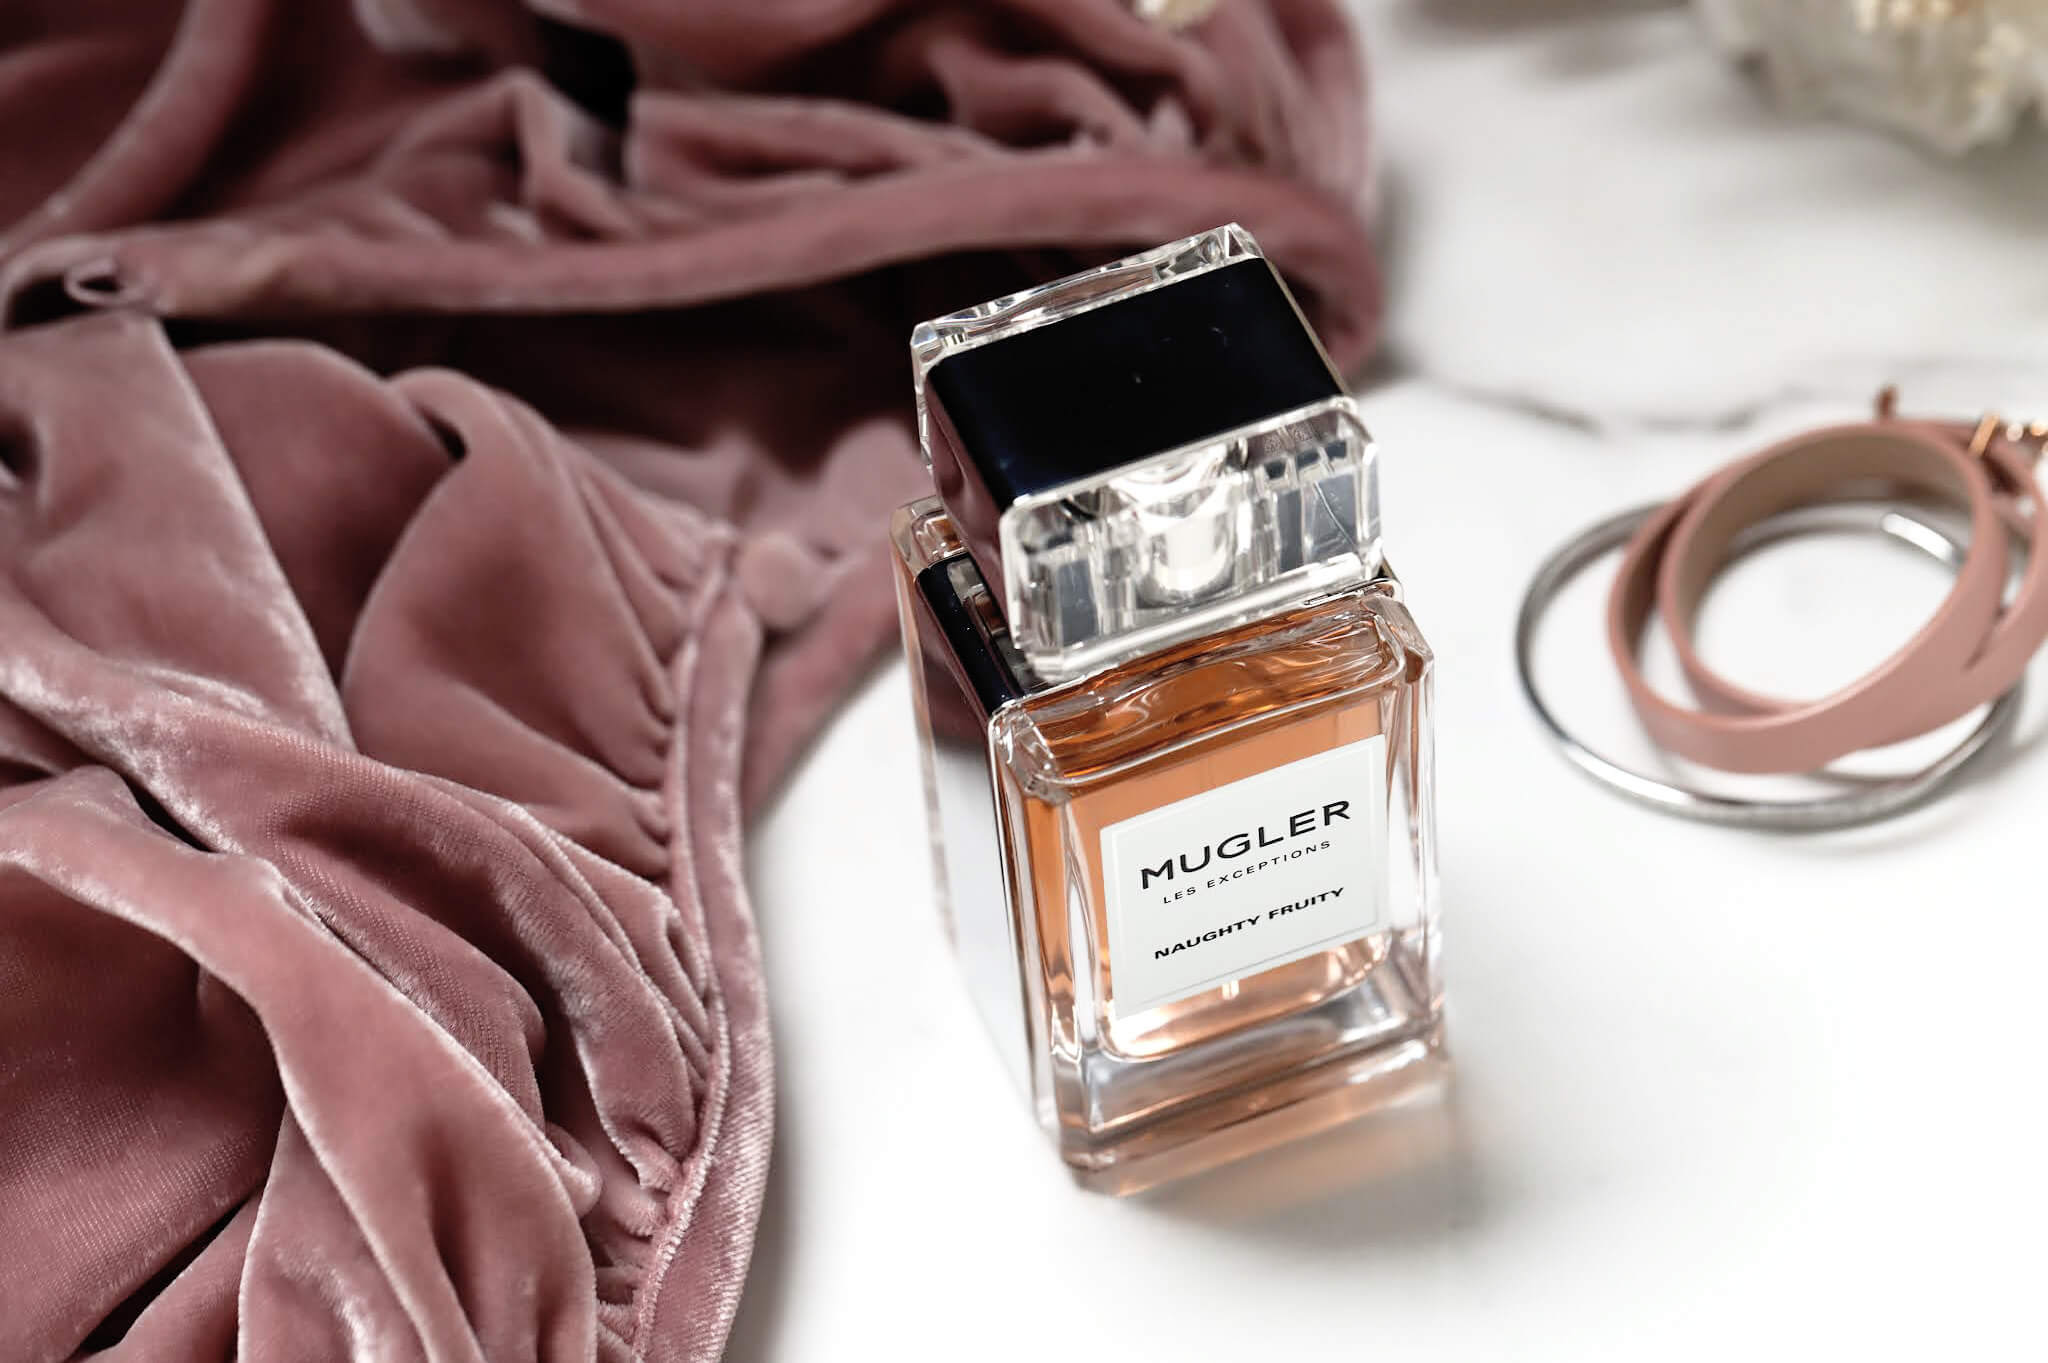 Mugler Les Exceptions Naughty Fruity